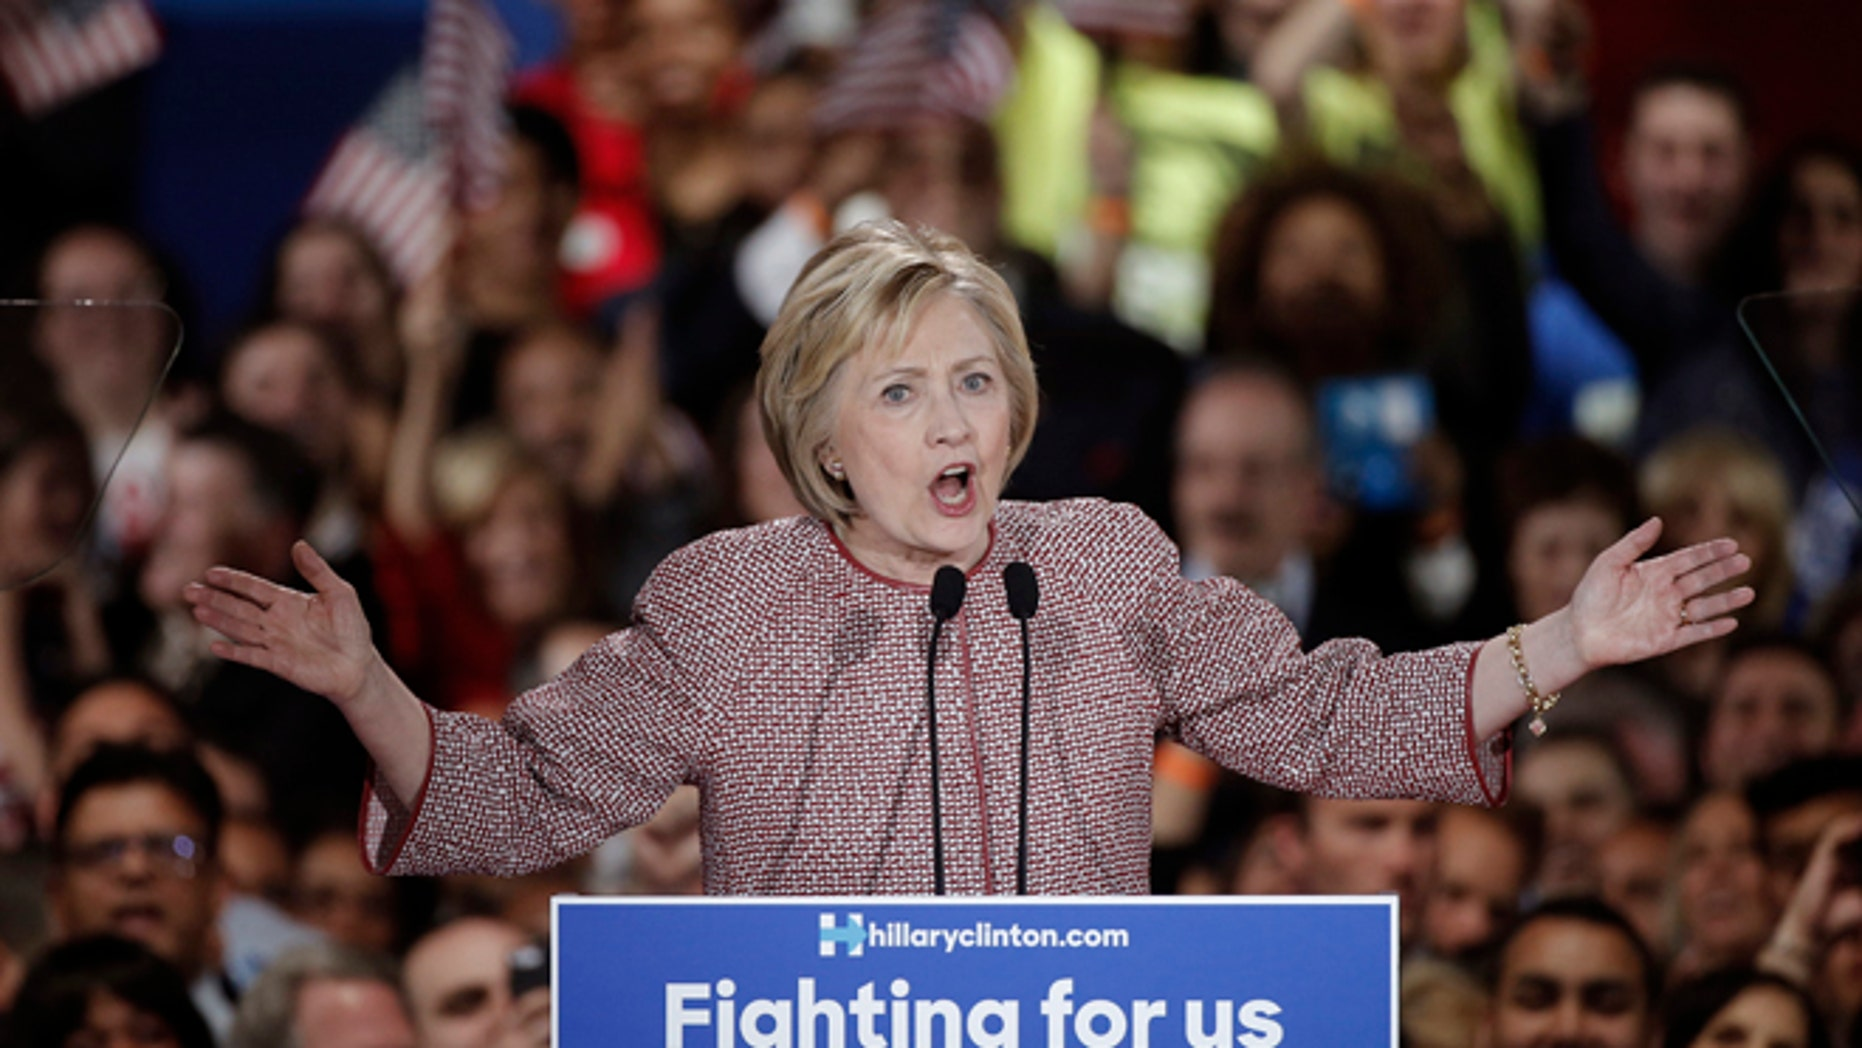 Democratic presidential candidate Hillary Clinton speaks at her New York presidential primary night rally in the Manhattan borough of New York City, U.S., April 19, 2016.